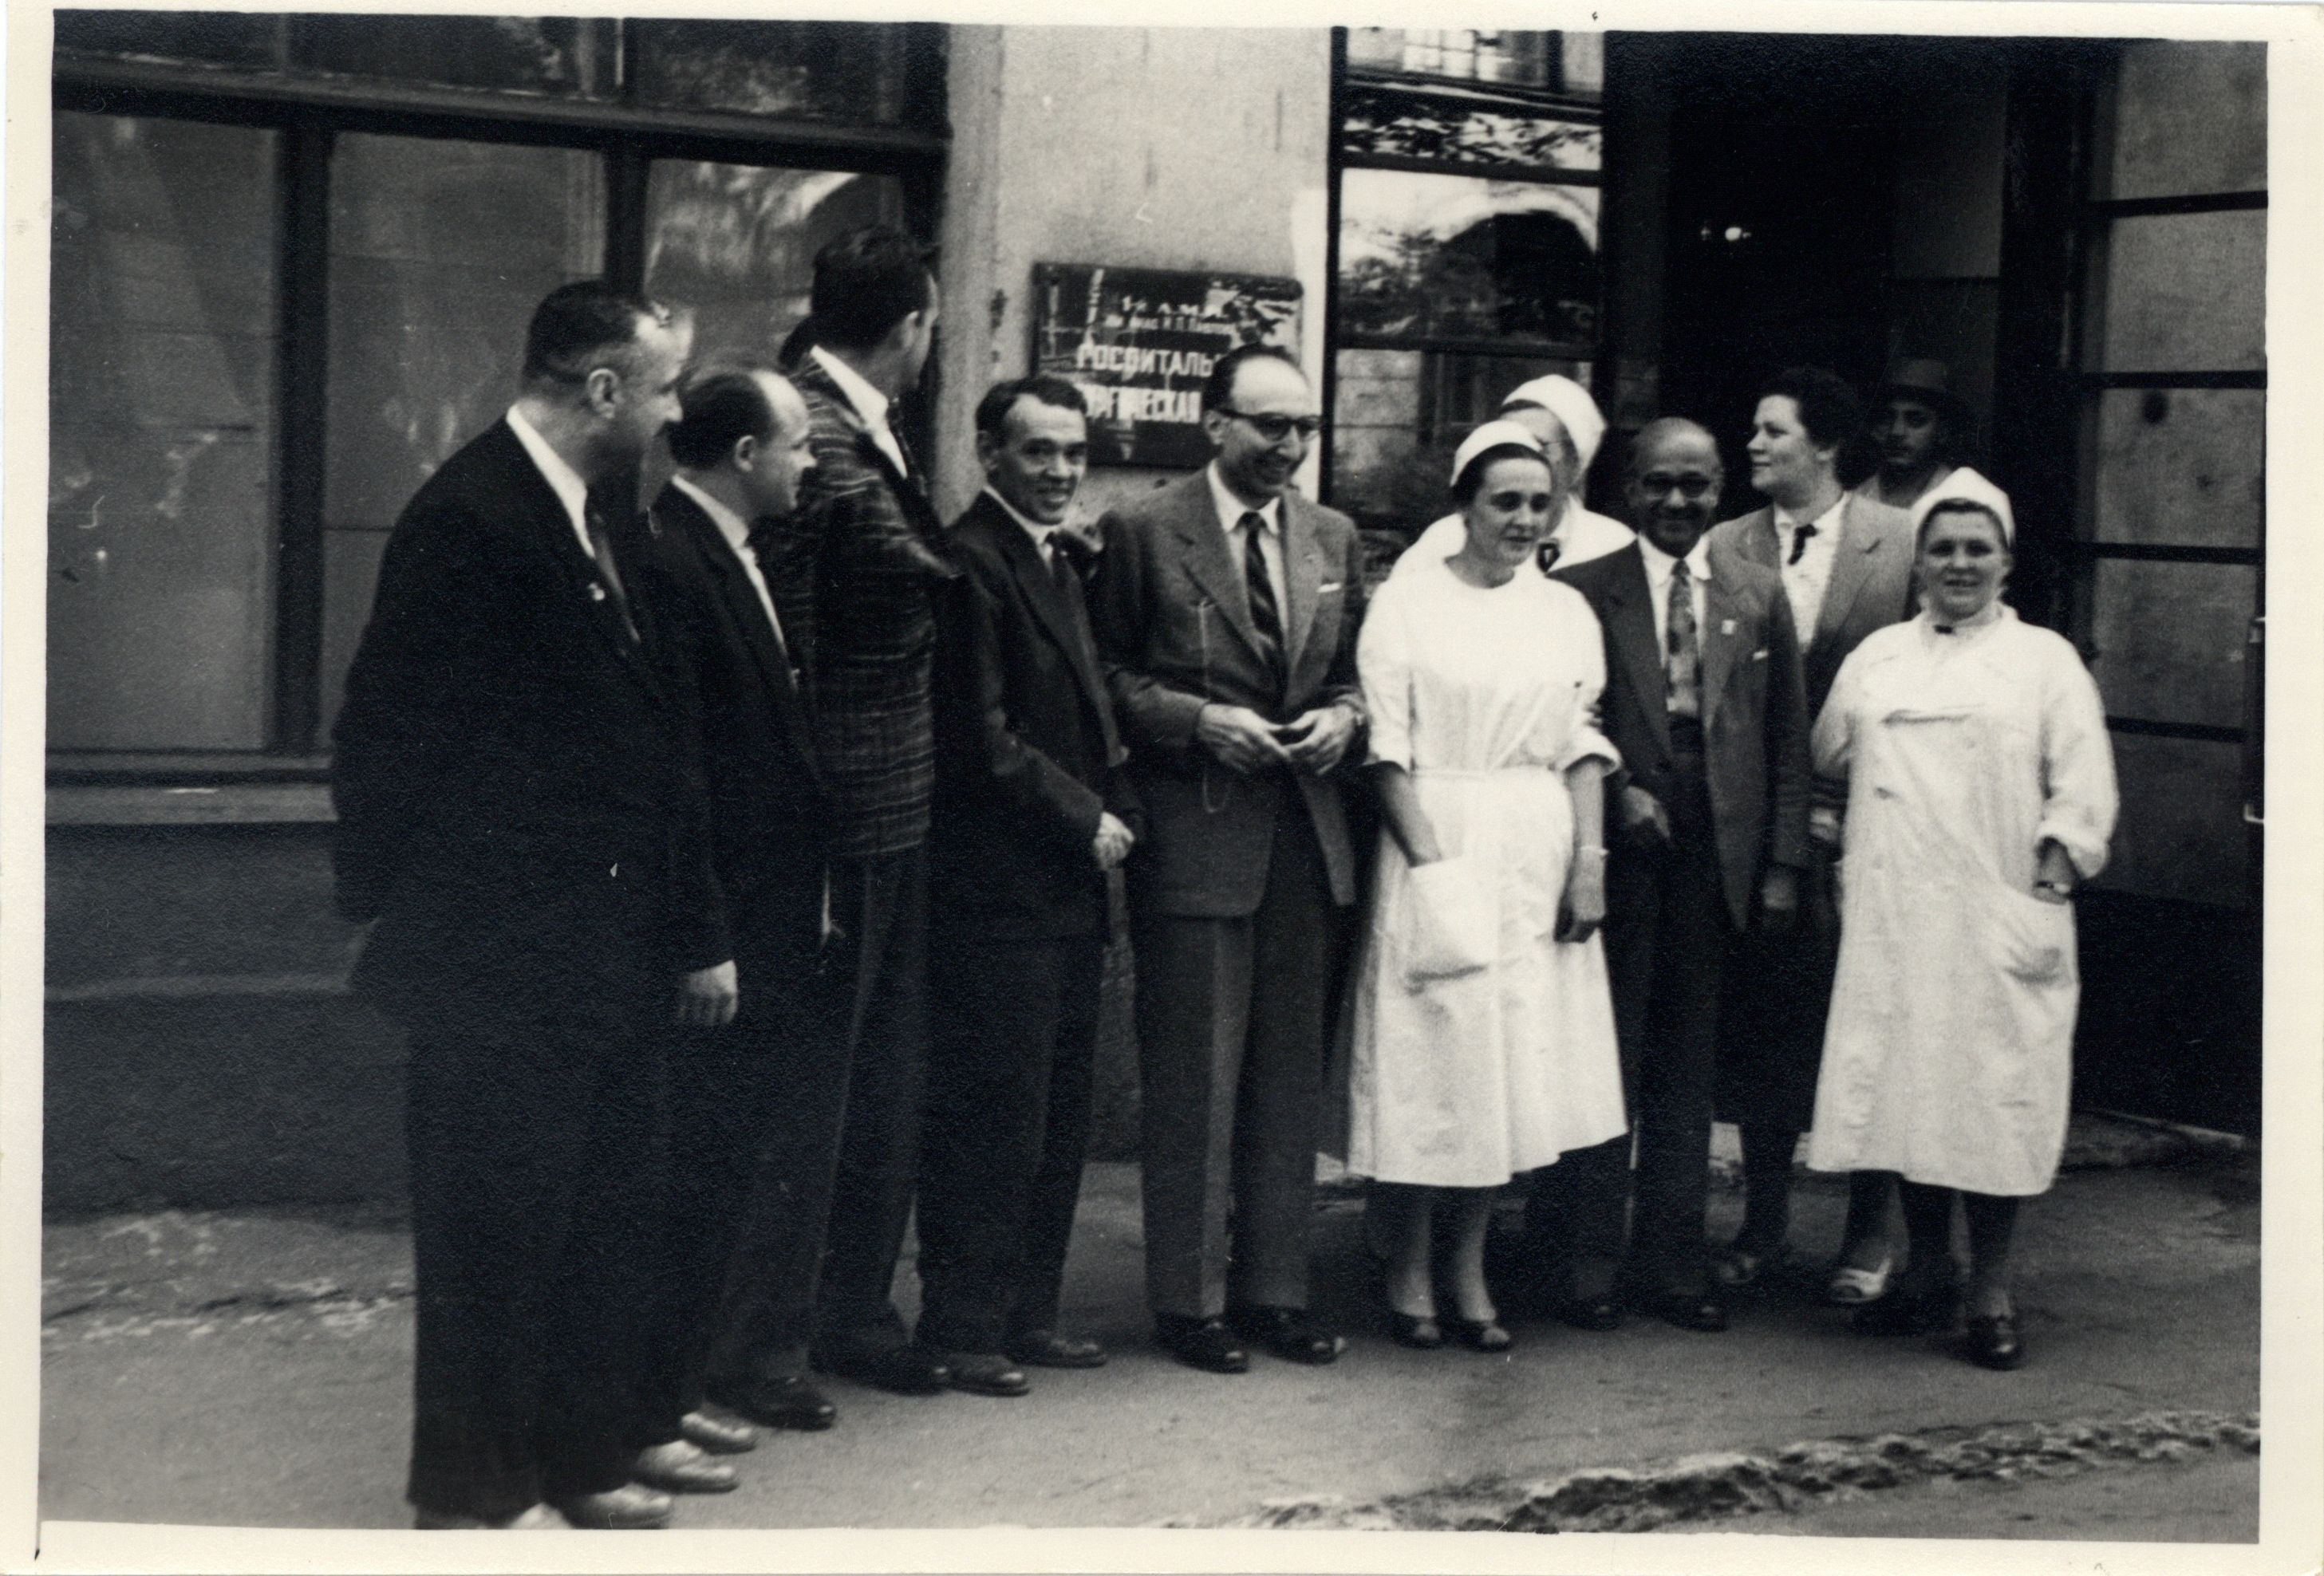 Michael DeBakey with Russian colleagues]. Photographic Print. 1 Image. [1958]